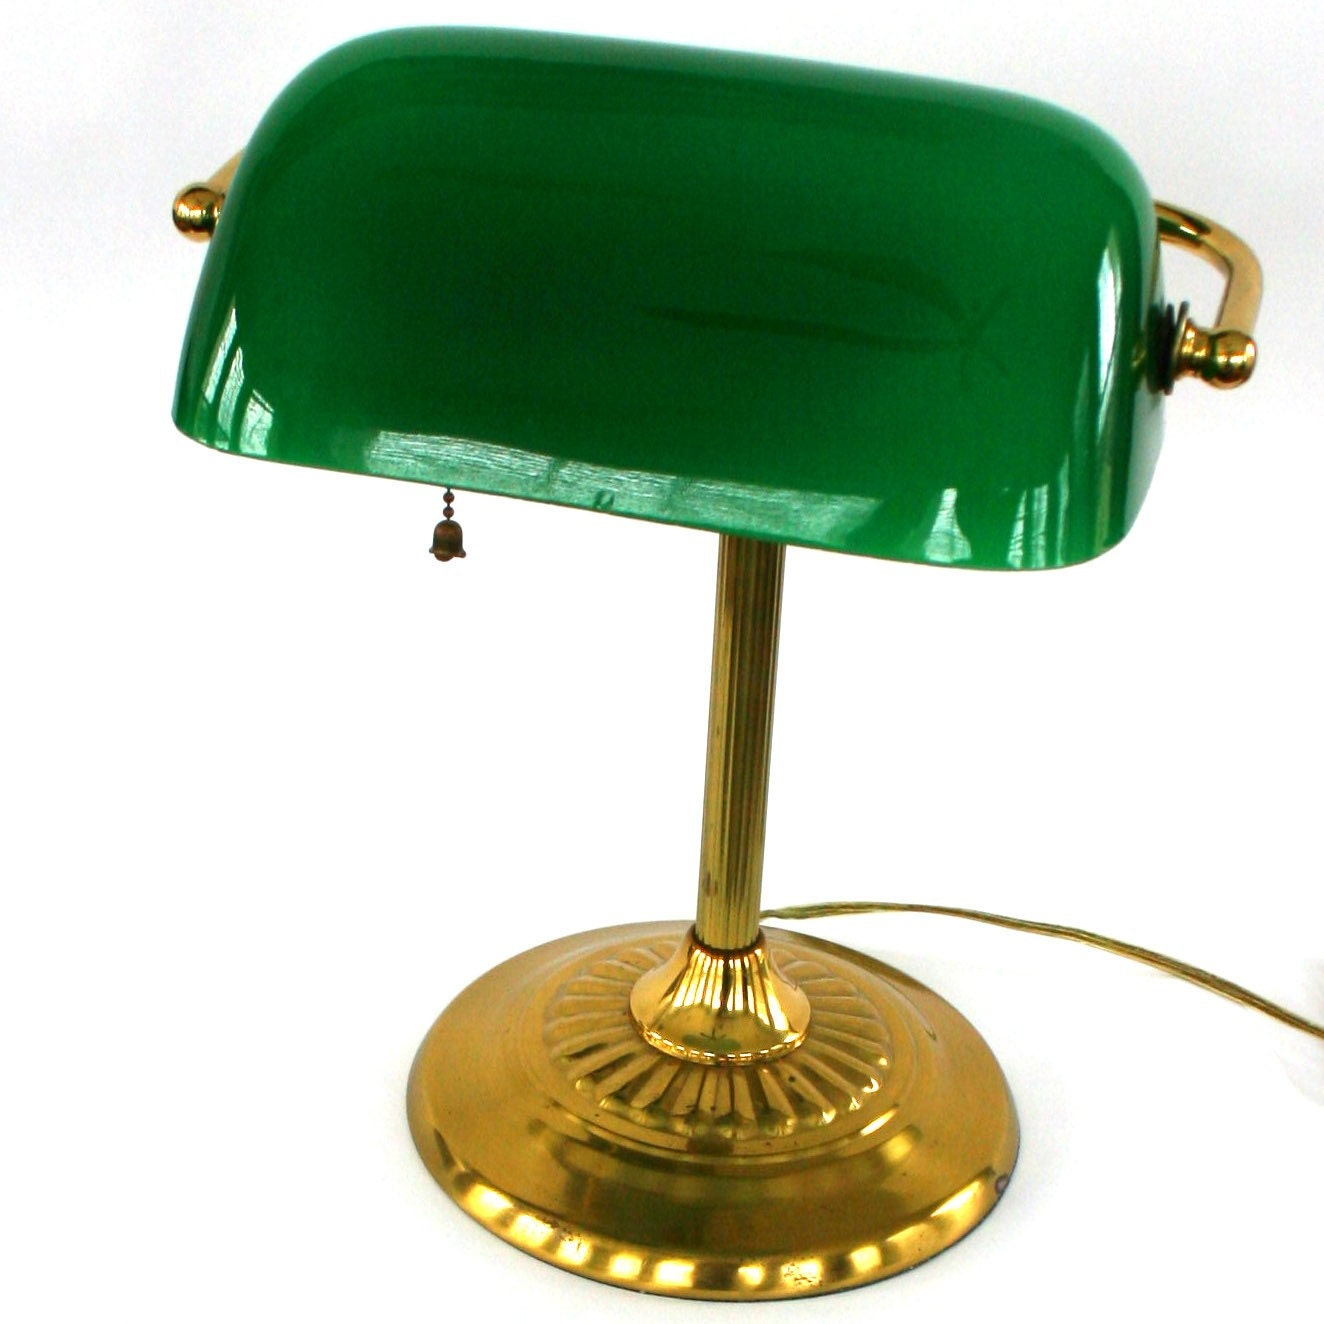 Vintage Bankers Lamp Brass Glass Kelly Green Emerald Home